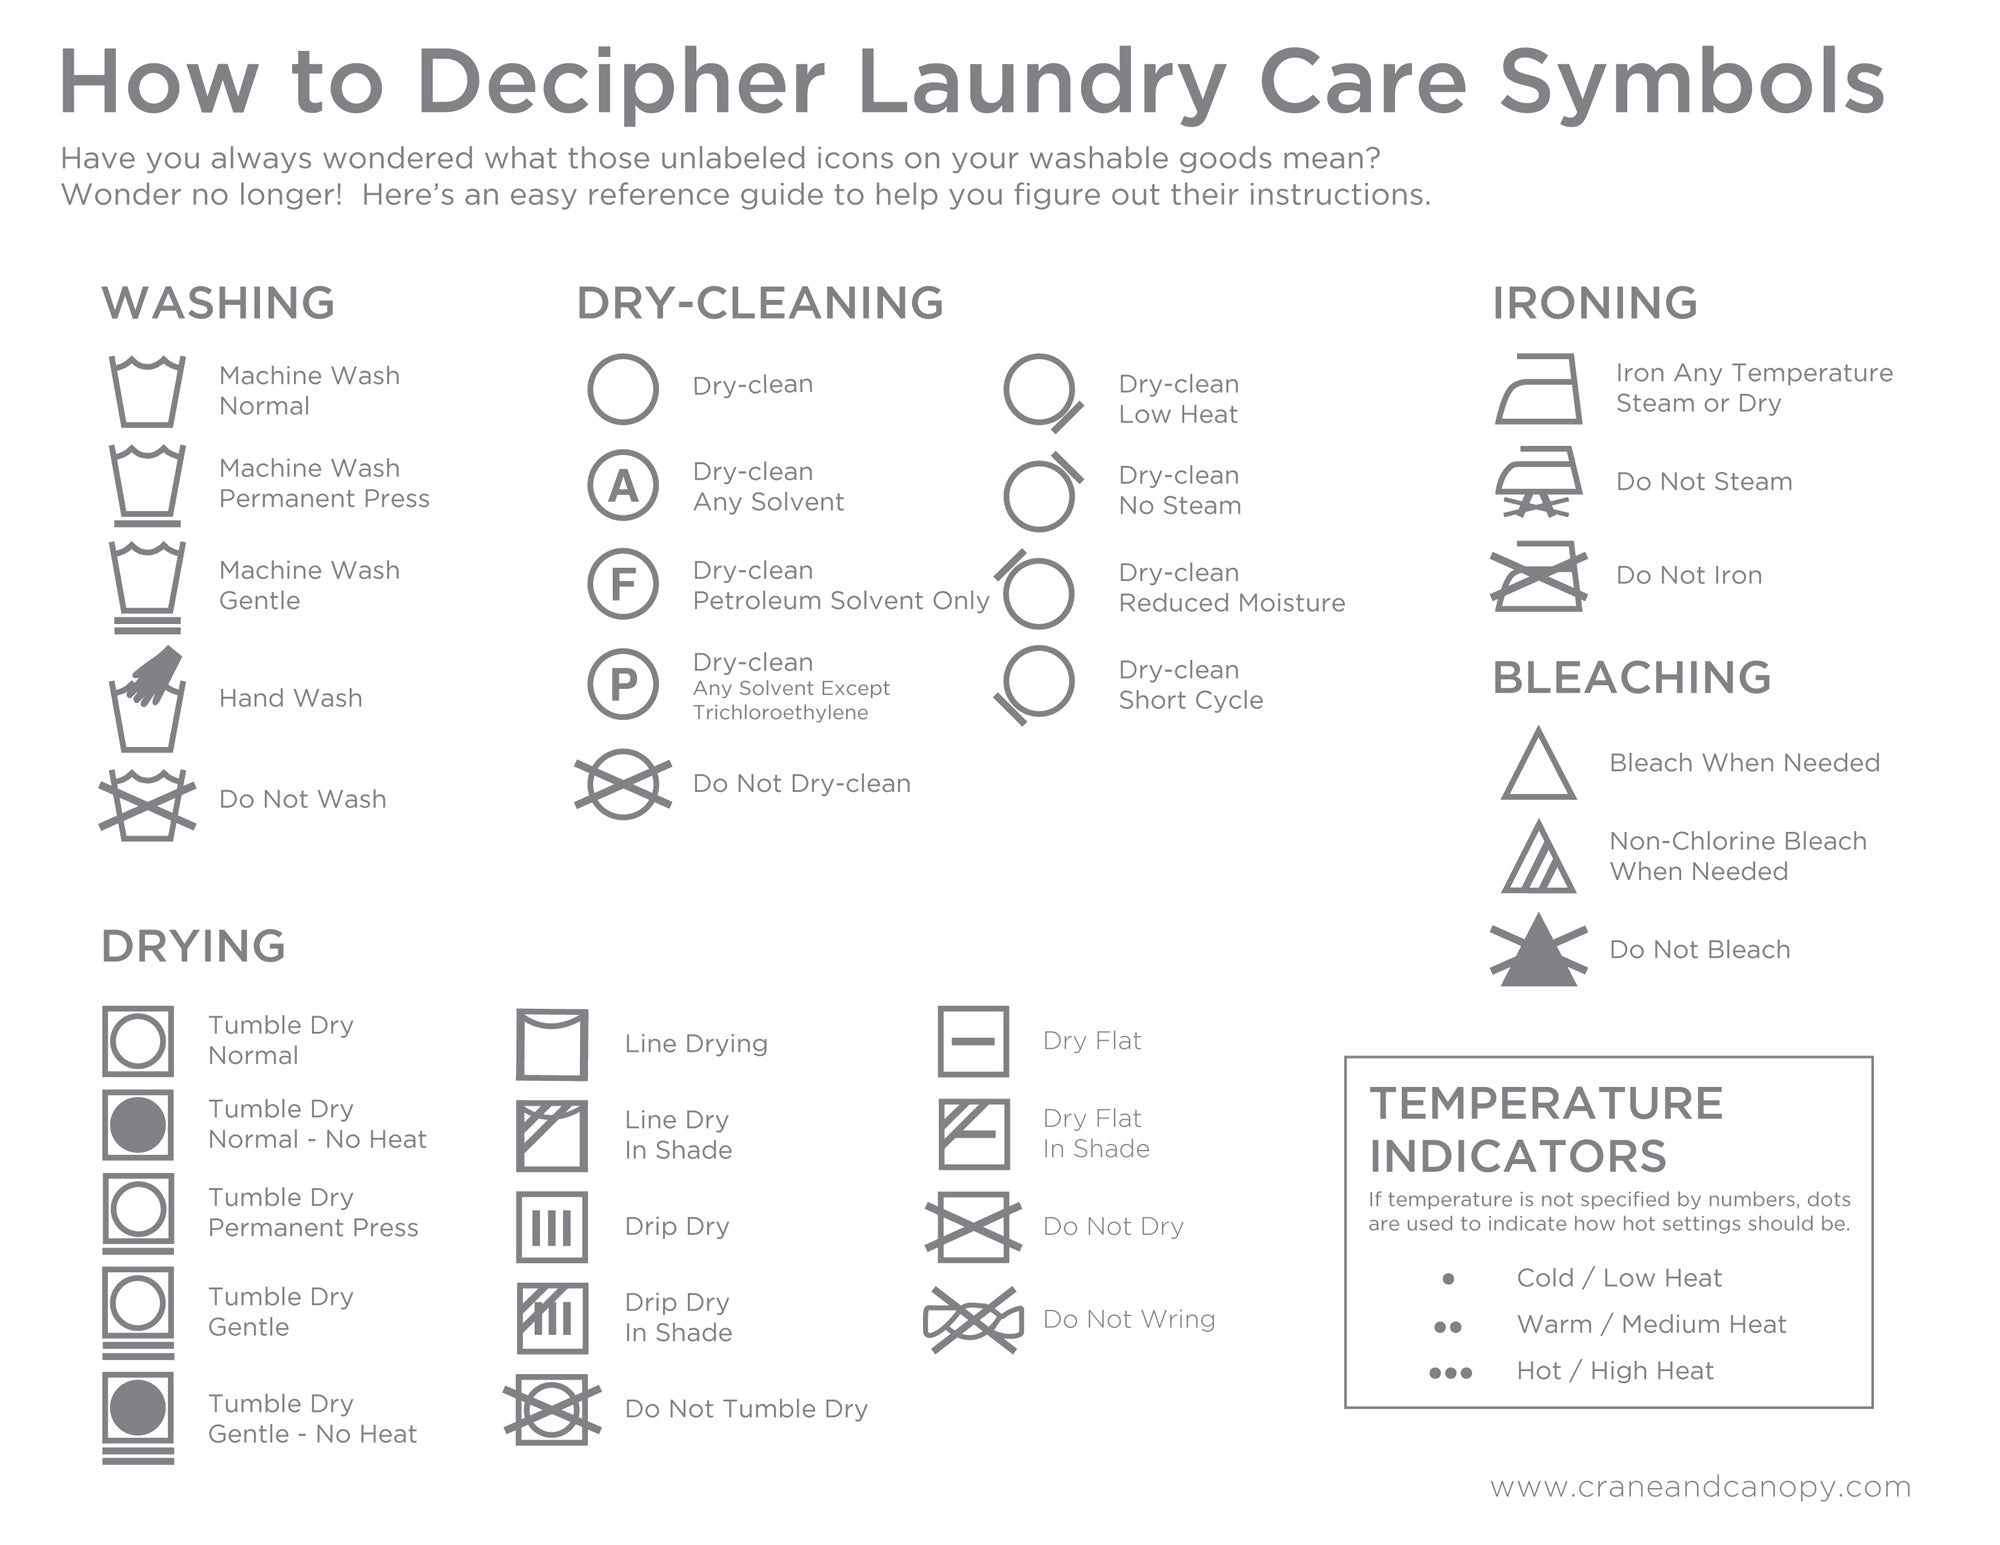 Mobile laundry care symbol chart crane canopy ever wonder what those cryptic symbols on the tags of your washable goods mean those symbols are care instructions that follow an international standard buycottarizona Gallery